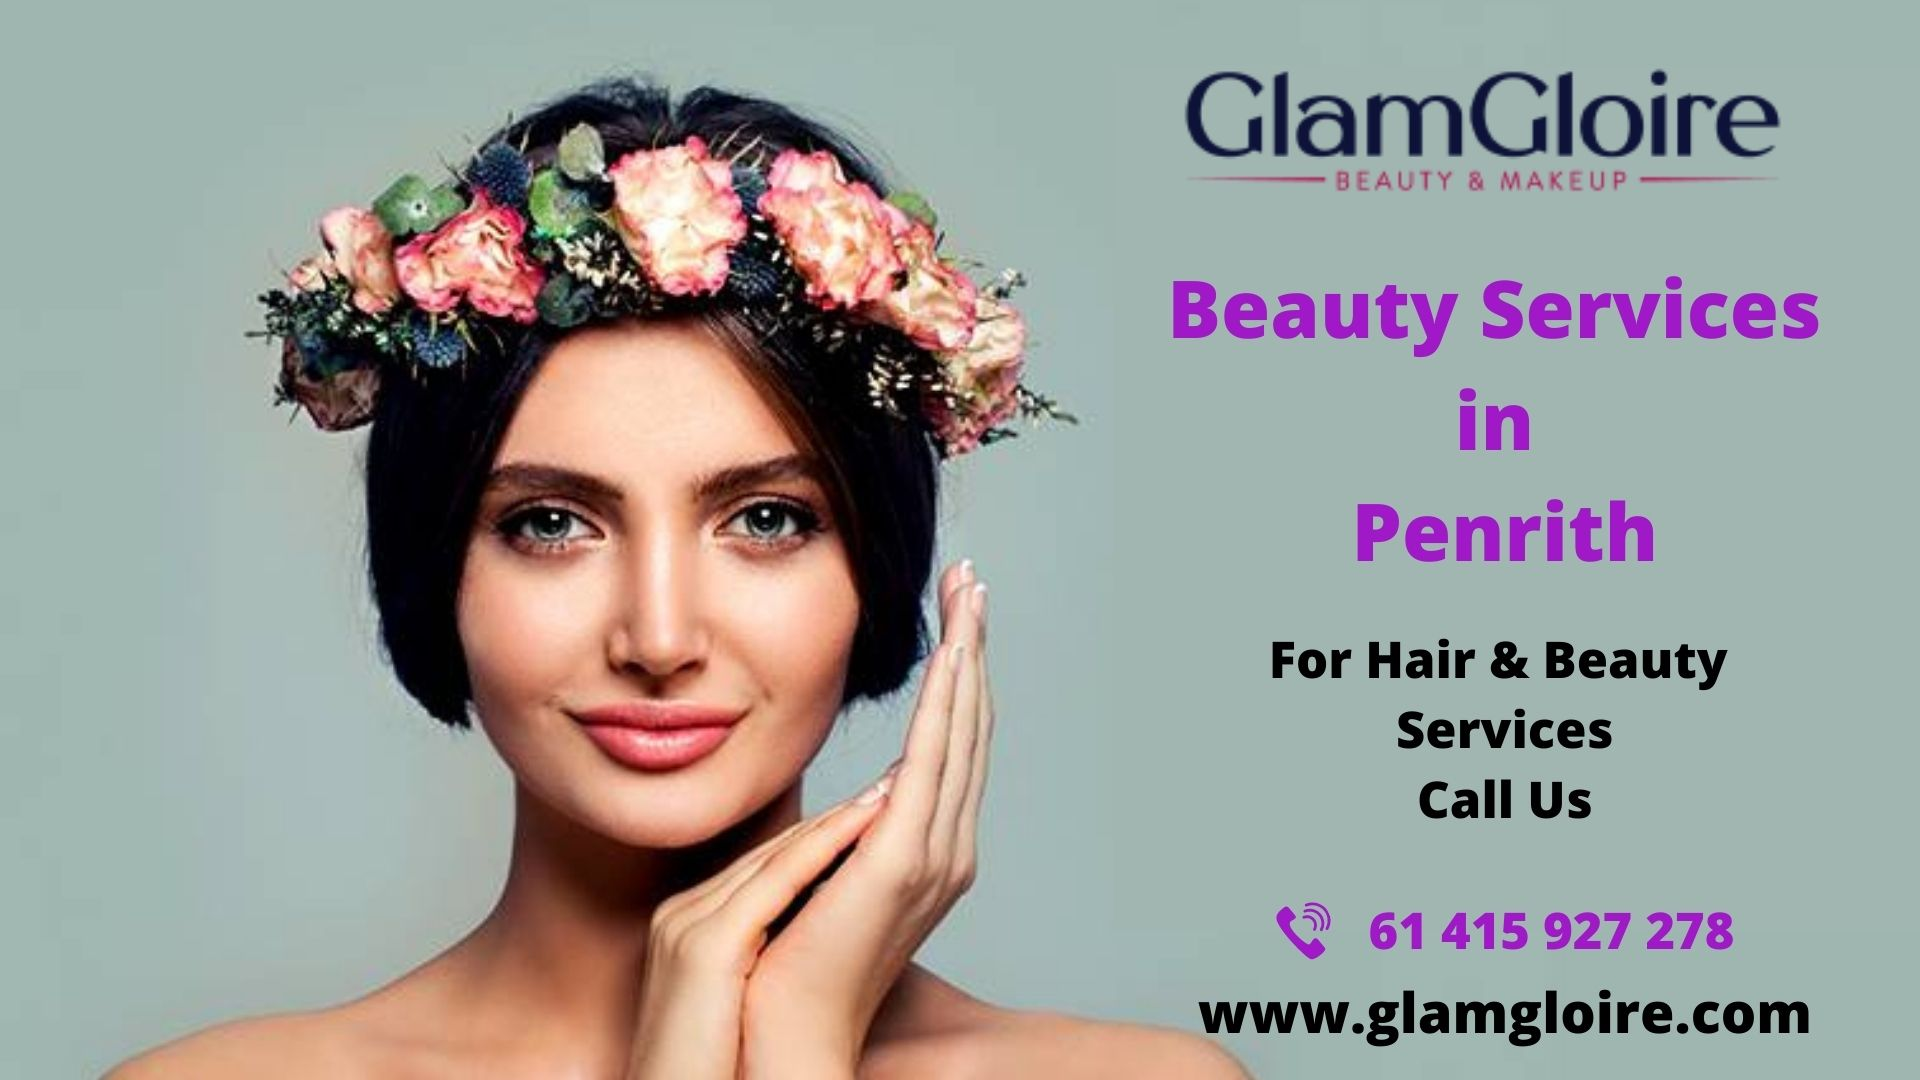 Beauty Services in Penrith | GlamGloire